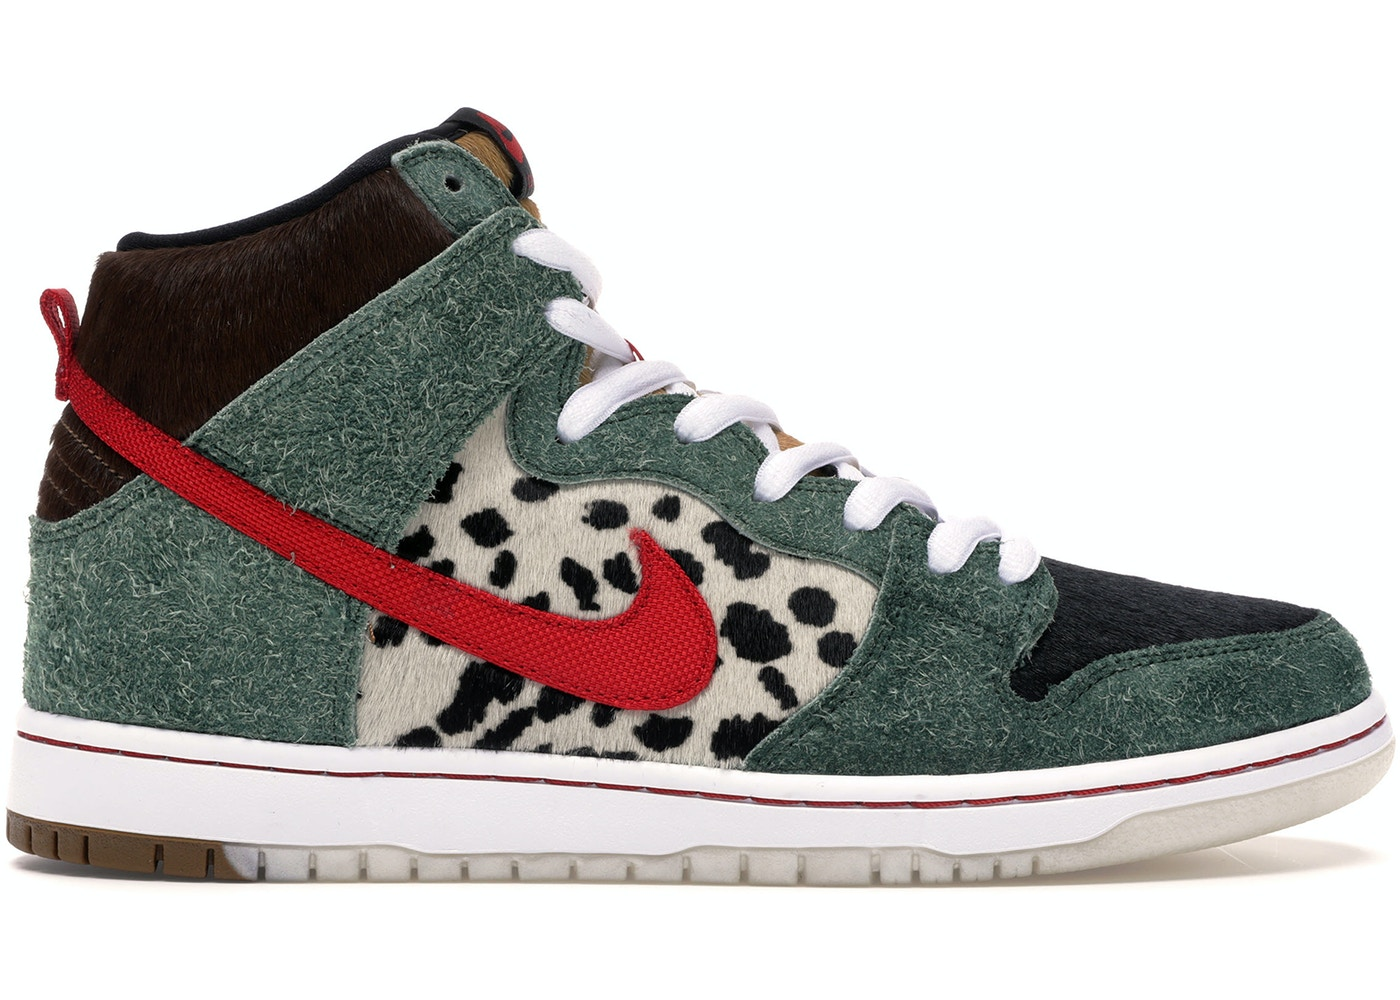 fa23865a784e Nike SB Dunk High Dog Walker - BQ6827-300